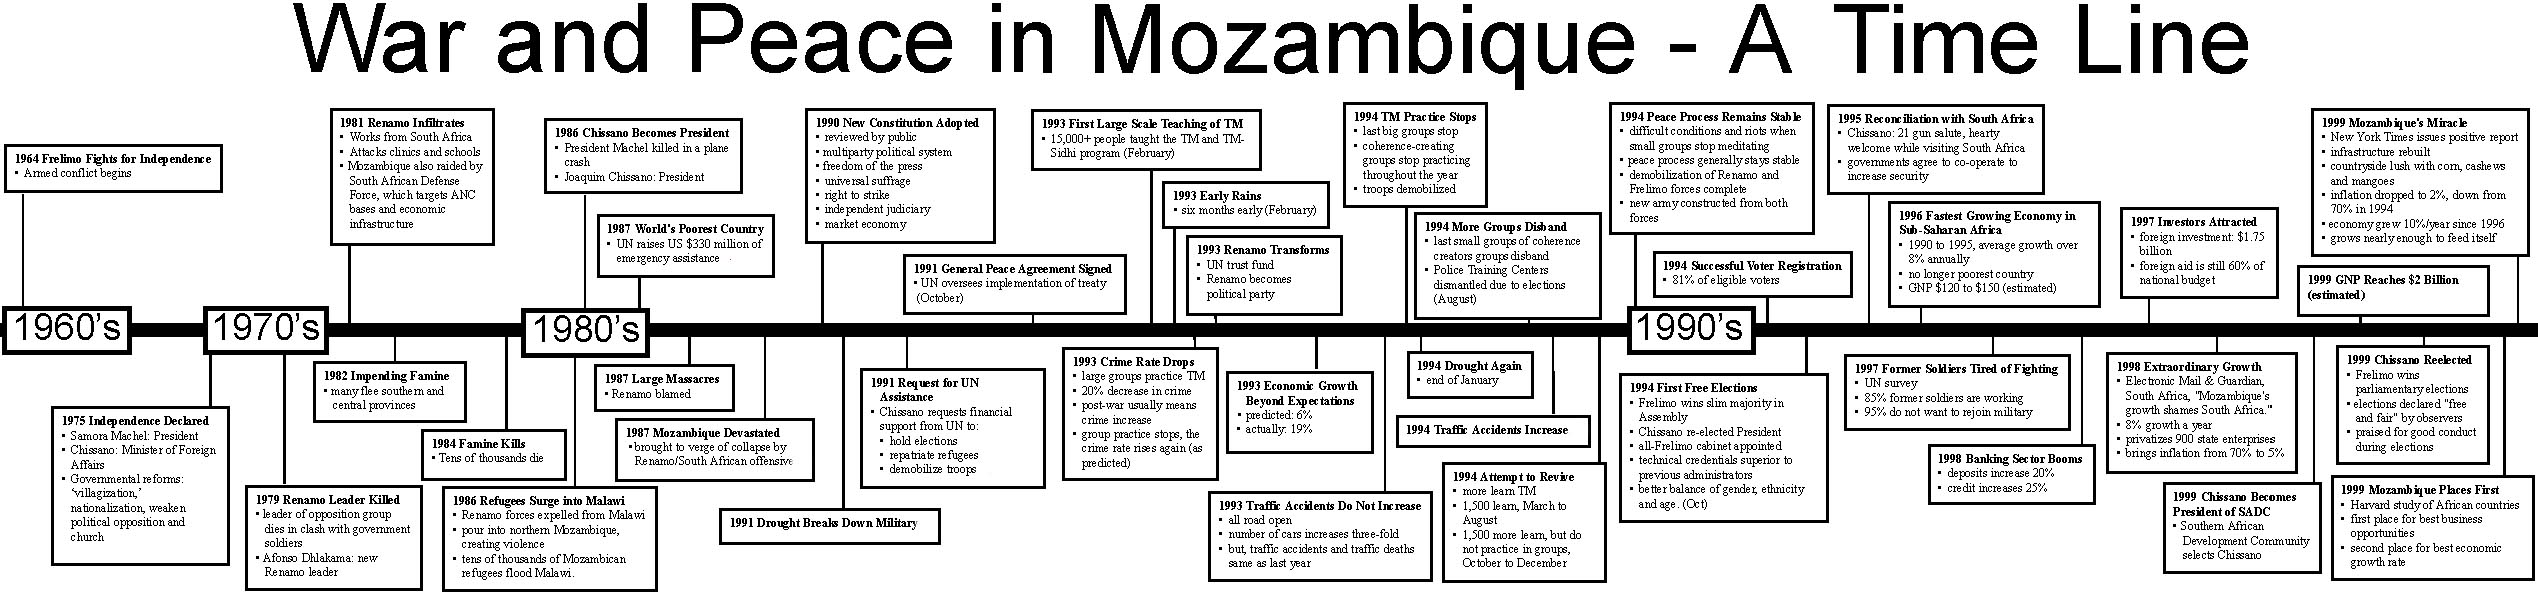 Timeline of Mozambique History since 1964